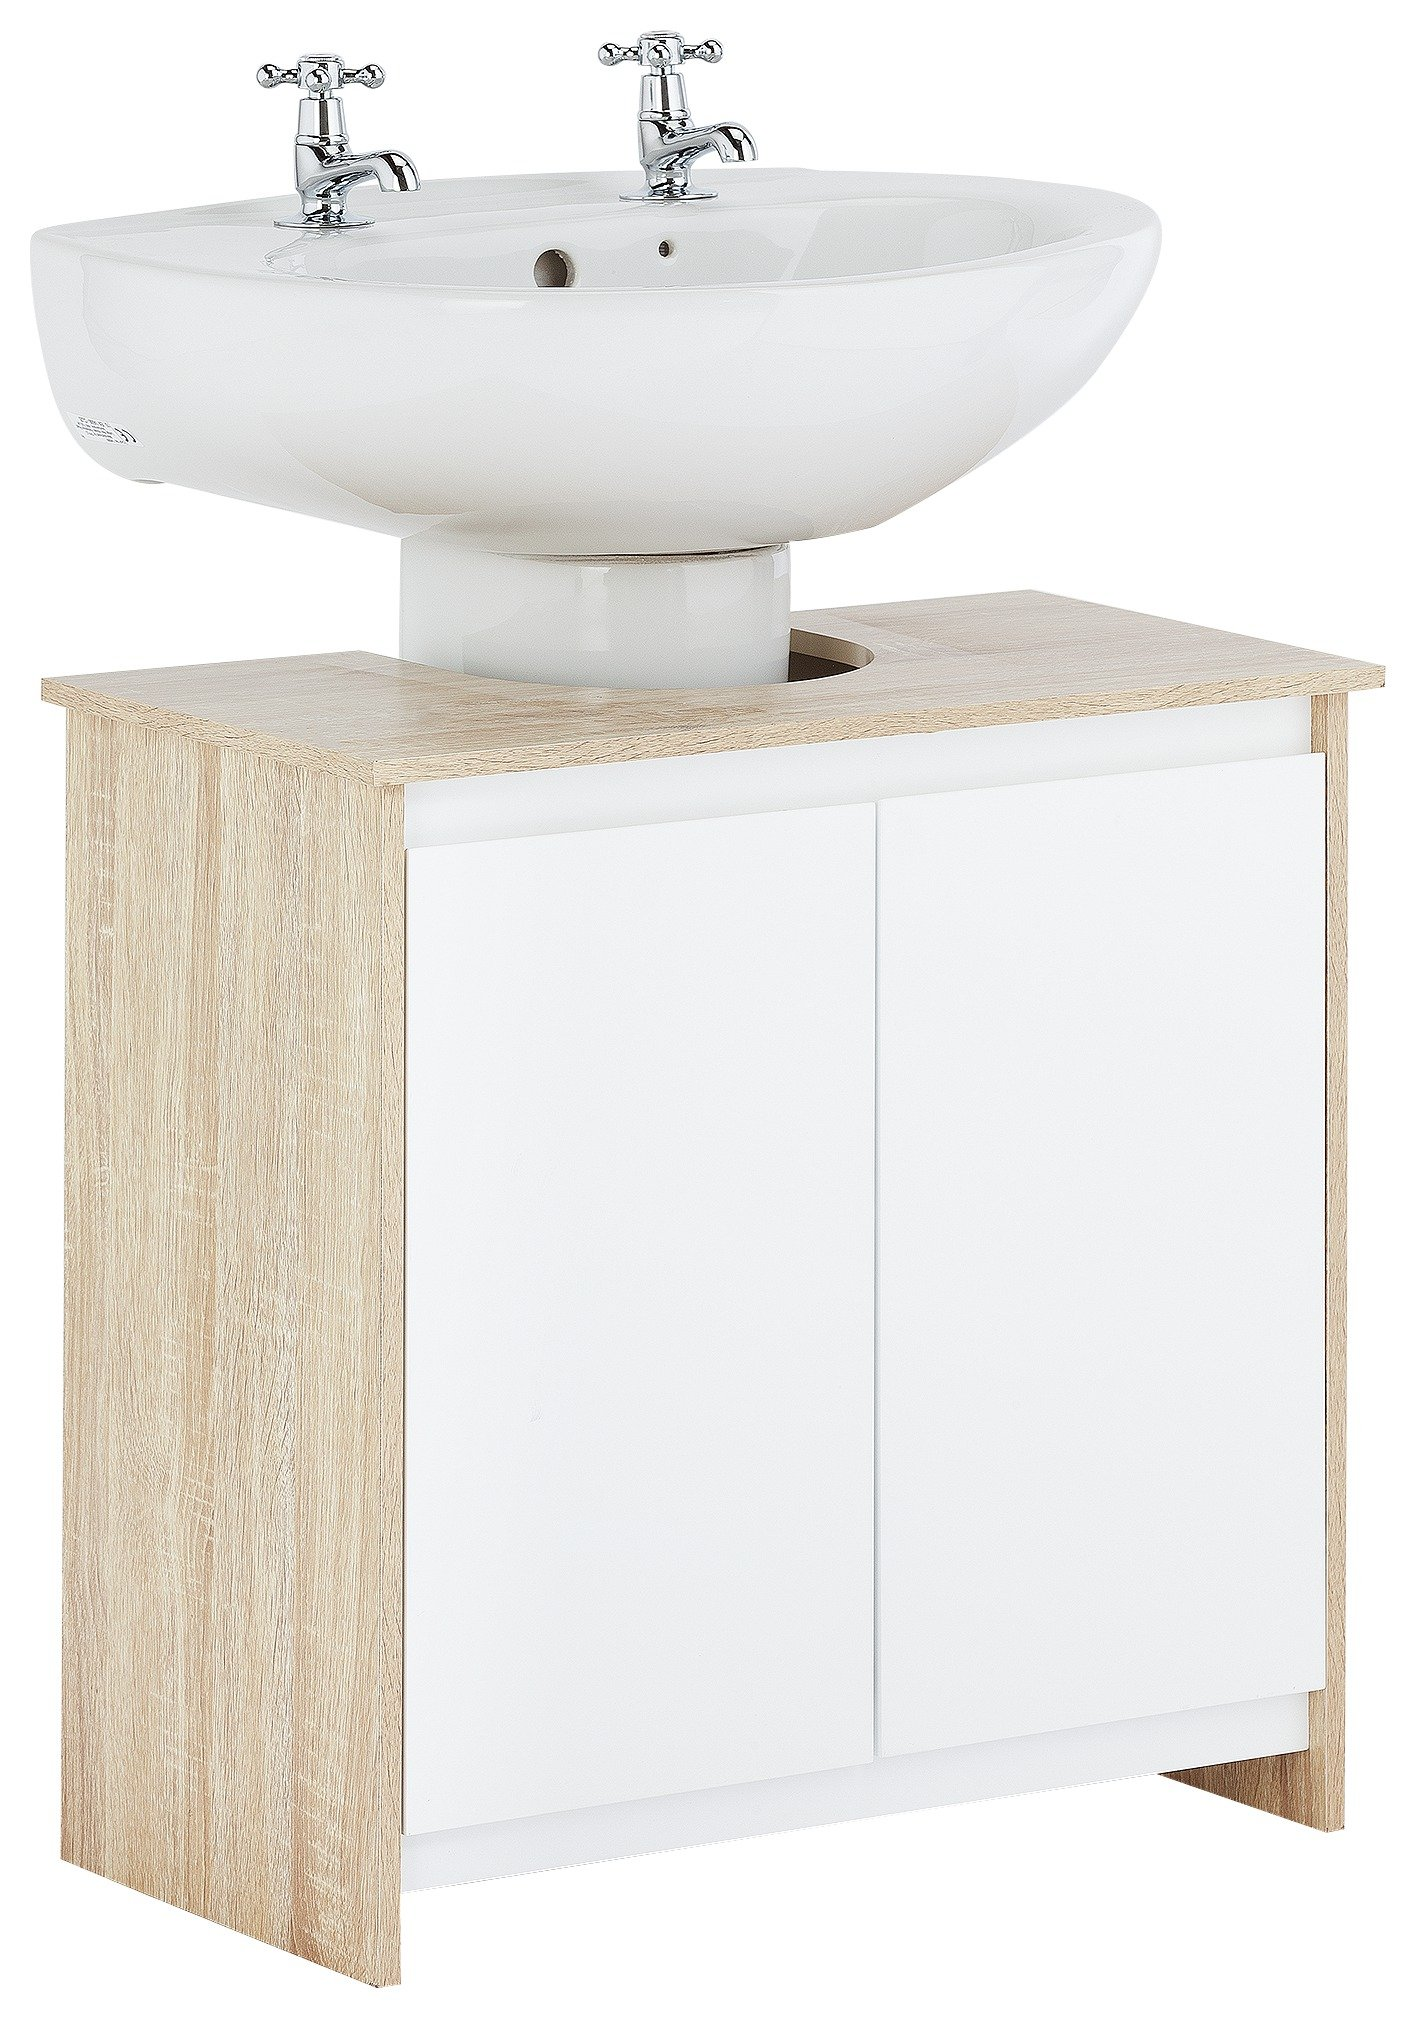 sink cabinets argos. click to zoom sink cabinets argos o